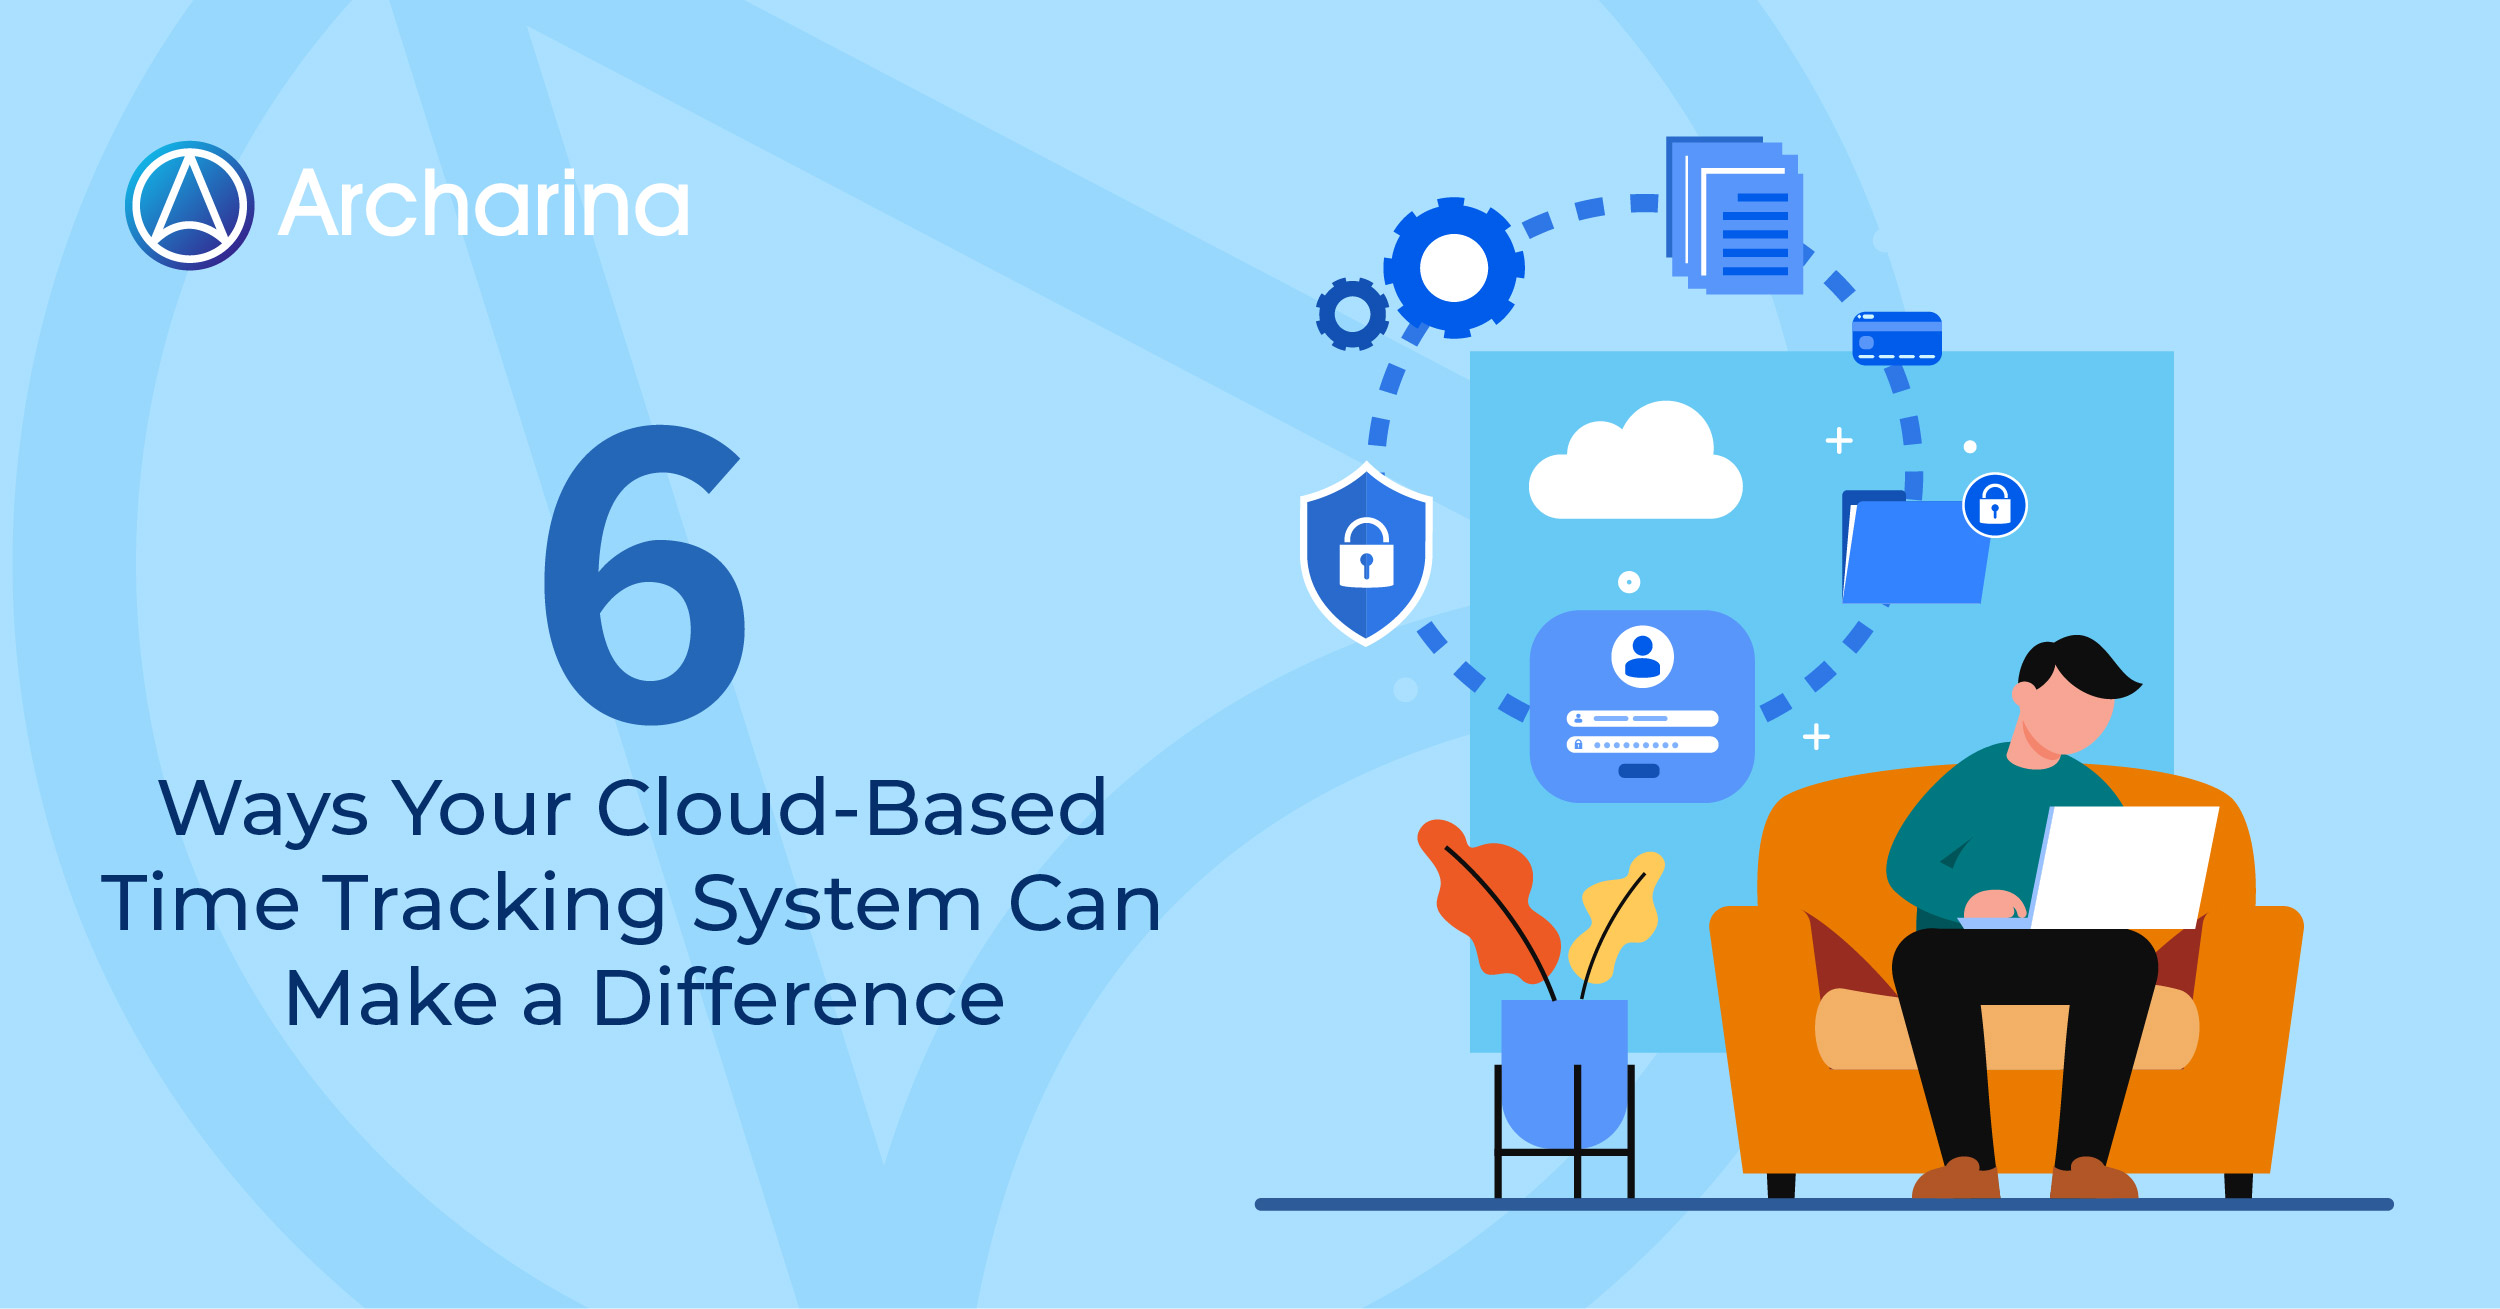 6 Ways Your Cloud-Based Time Tracking System Can Make a Difference